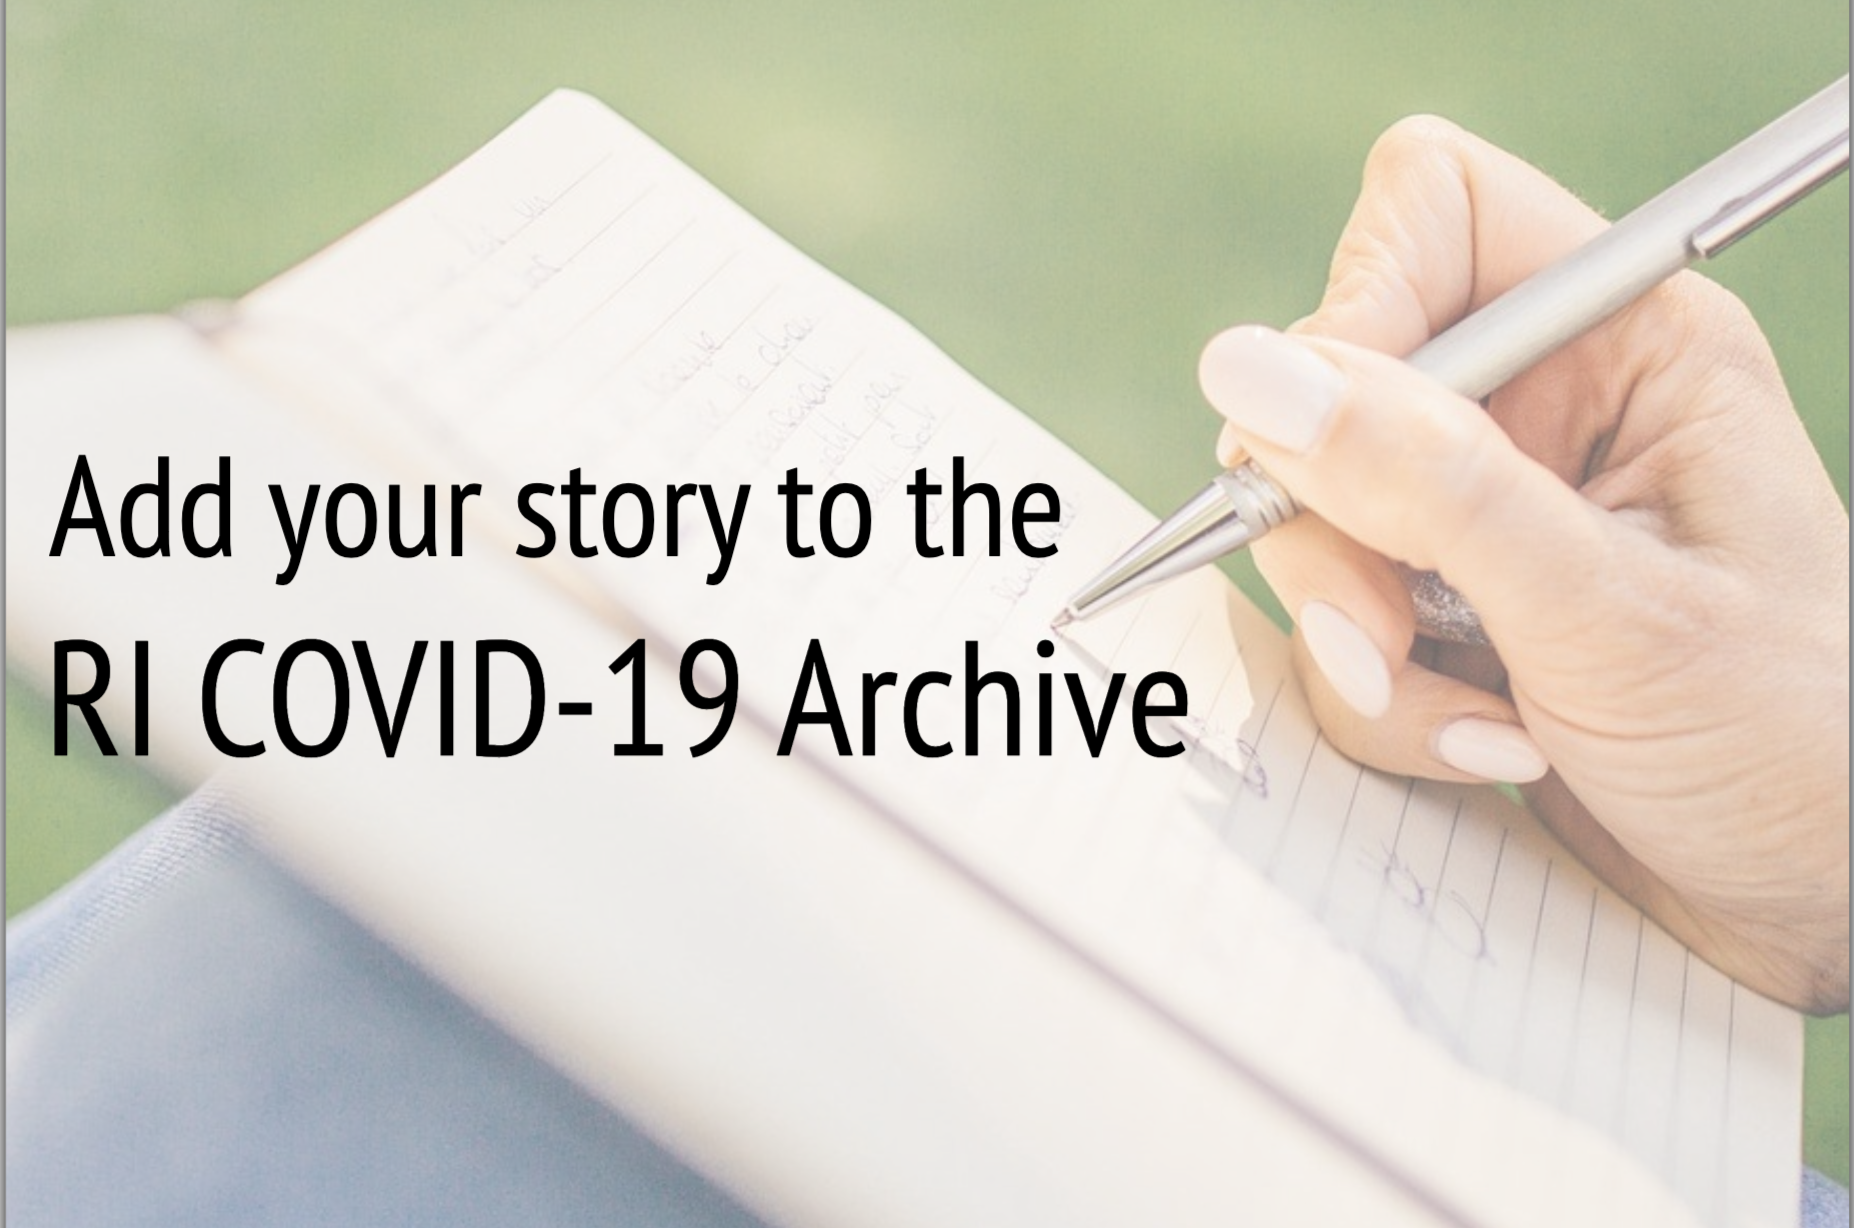 Add your story to the RI COVID-19 Archive